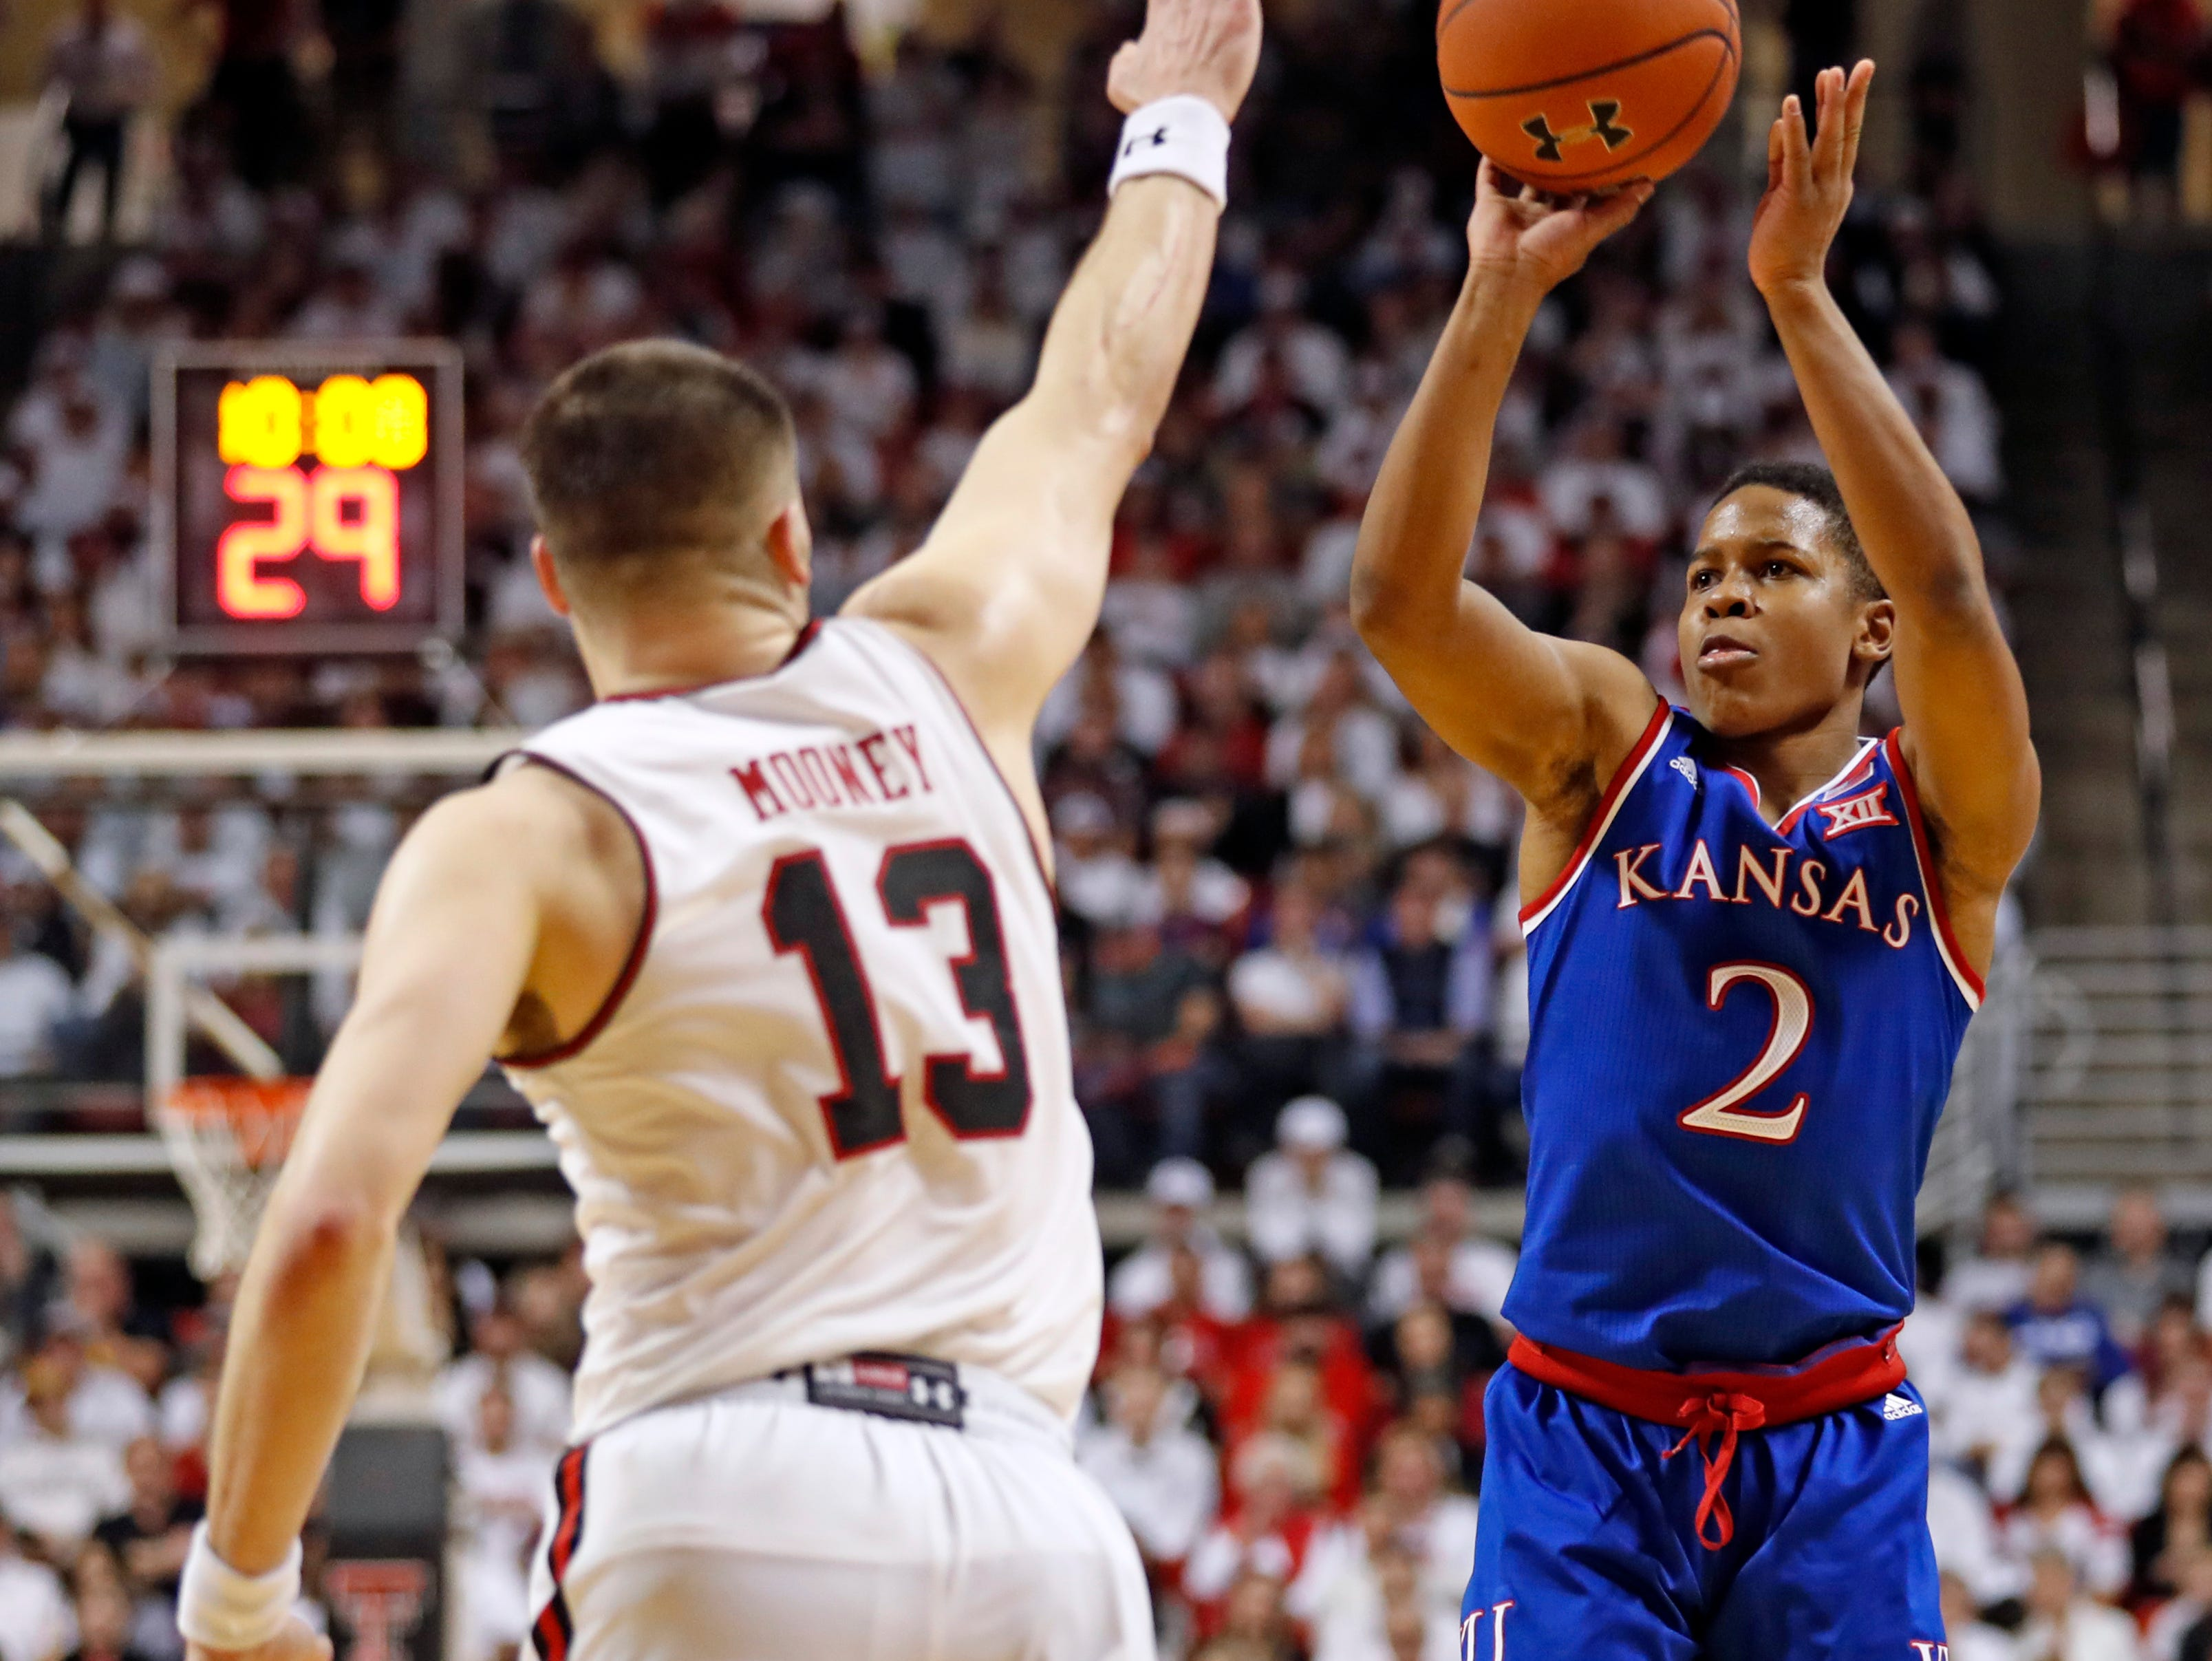 Kansas' Charlie Moore (2) shoots over Texas Tech's Matt Mooney (13) during the second half of an NCAA college basketball game Saturday, Feb. 23, 2019, in Lubbock, Texas. (AP Photo/Brad Tollefson)